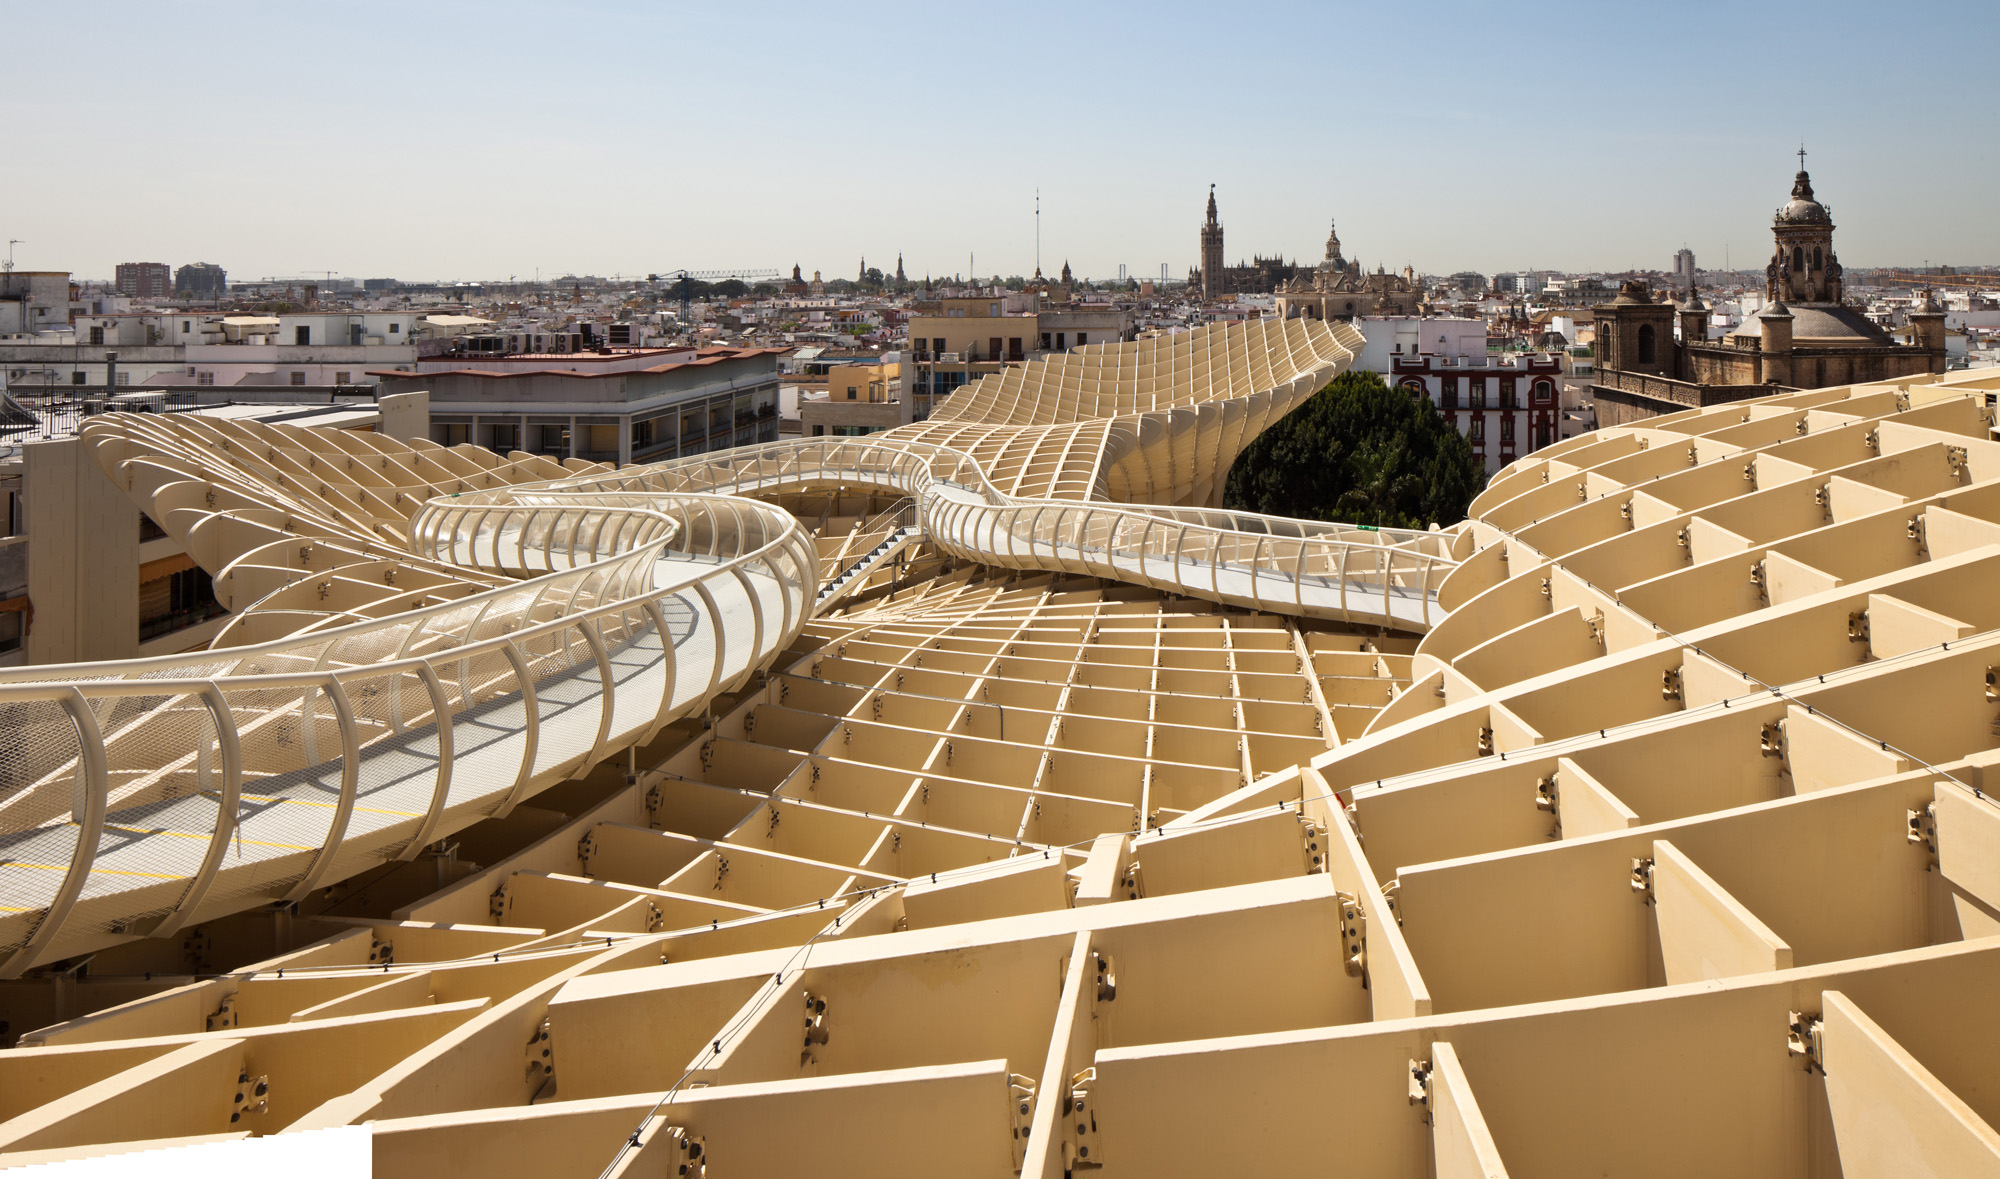 metropol parasol, j. mayer h. architects, spain, landmark, crazy architecture